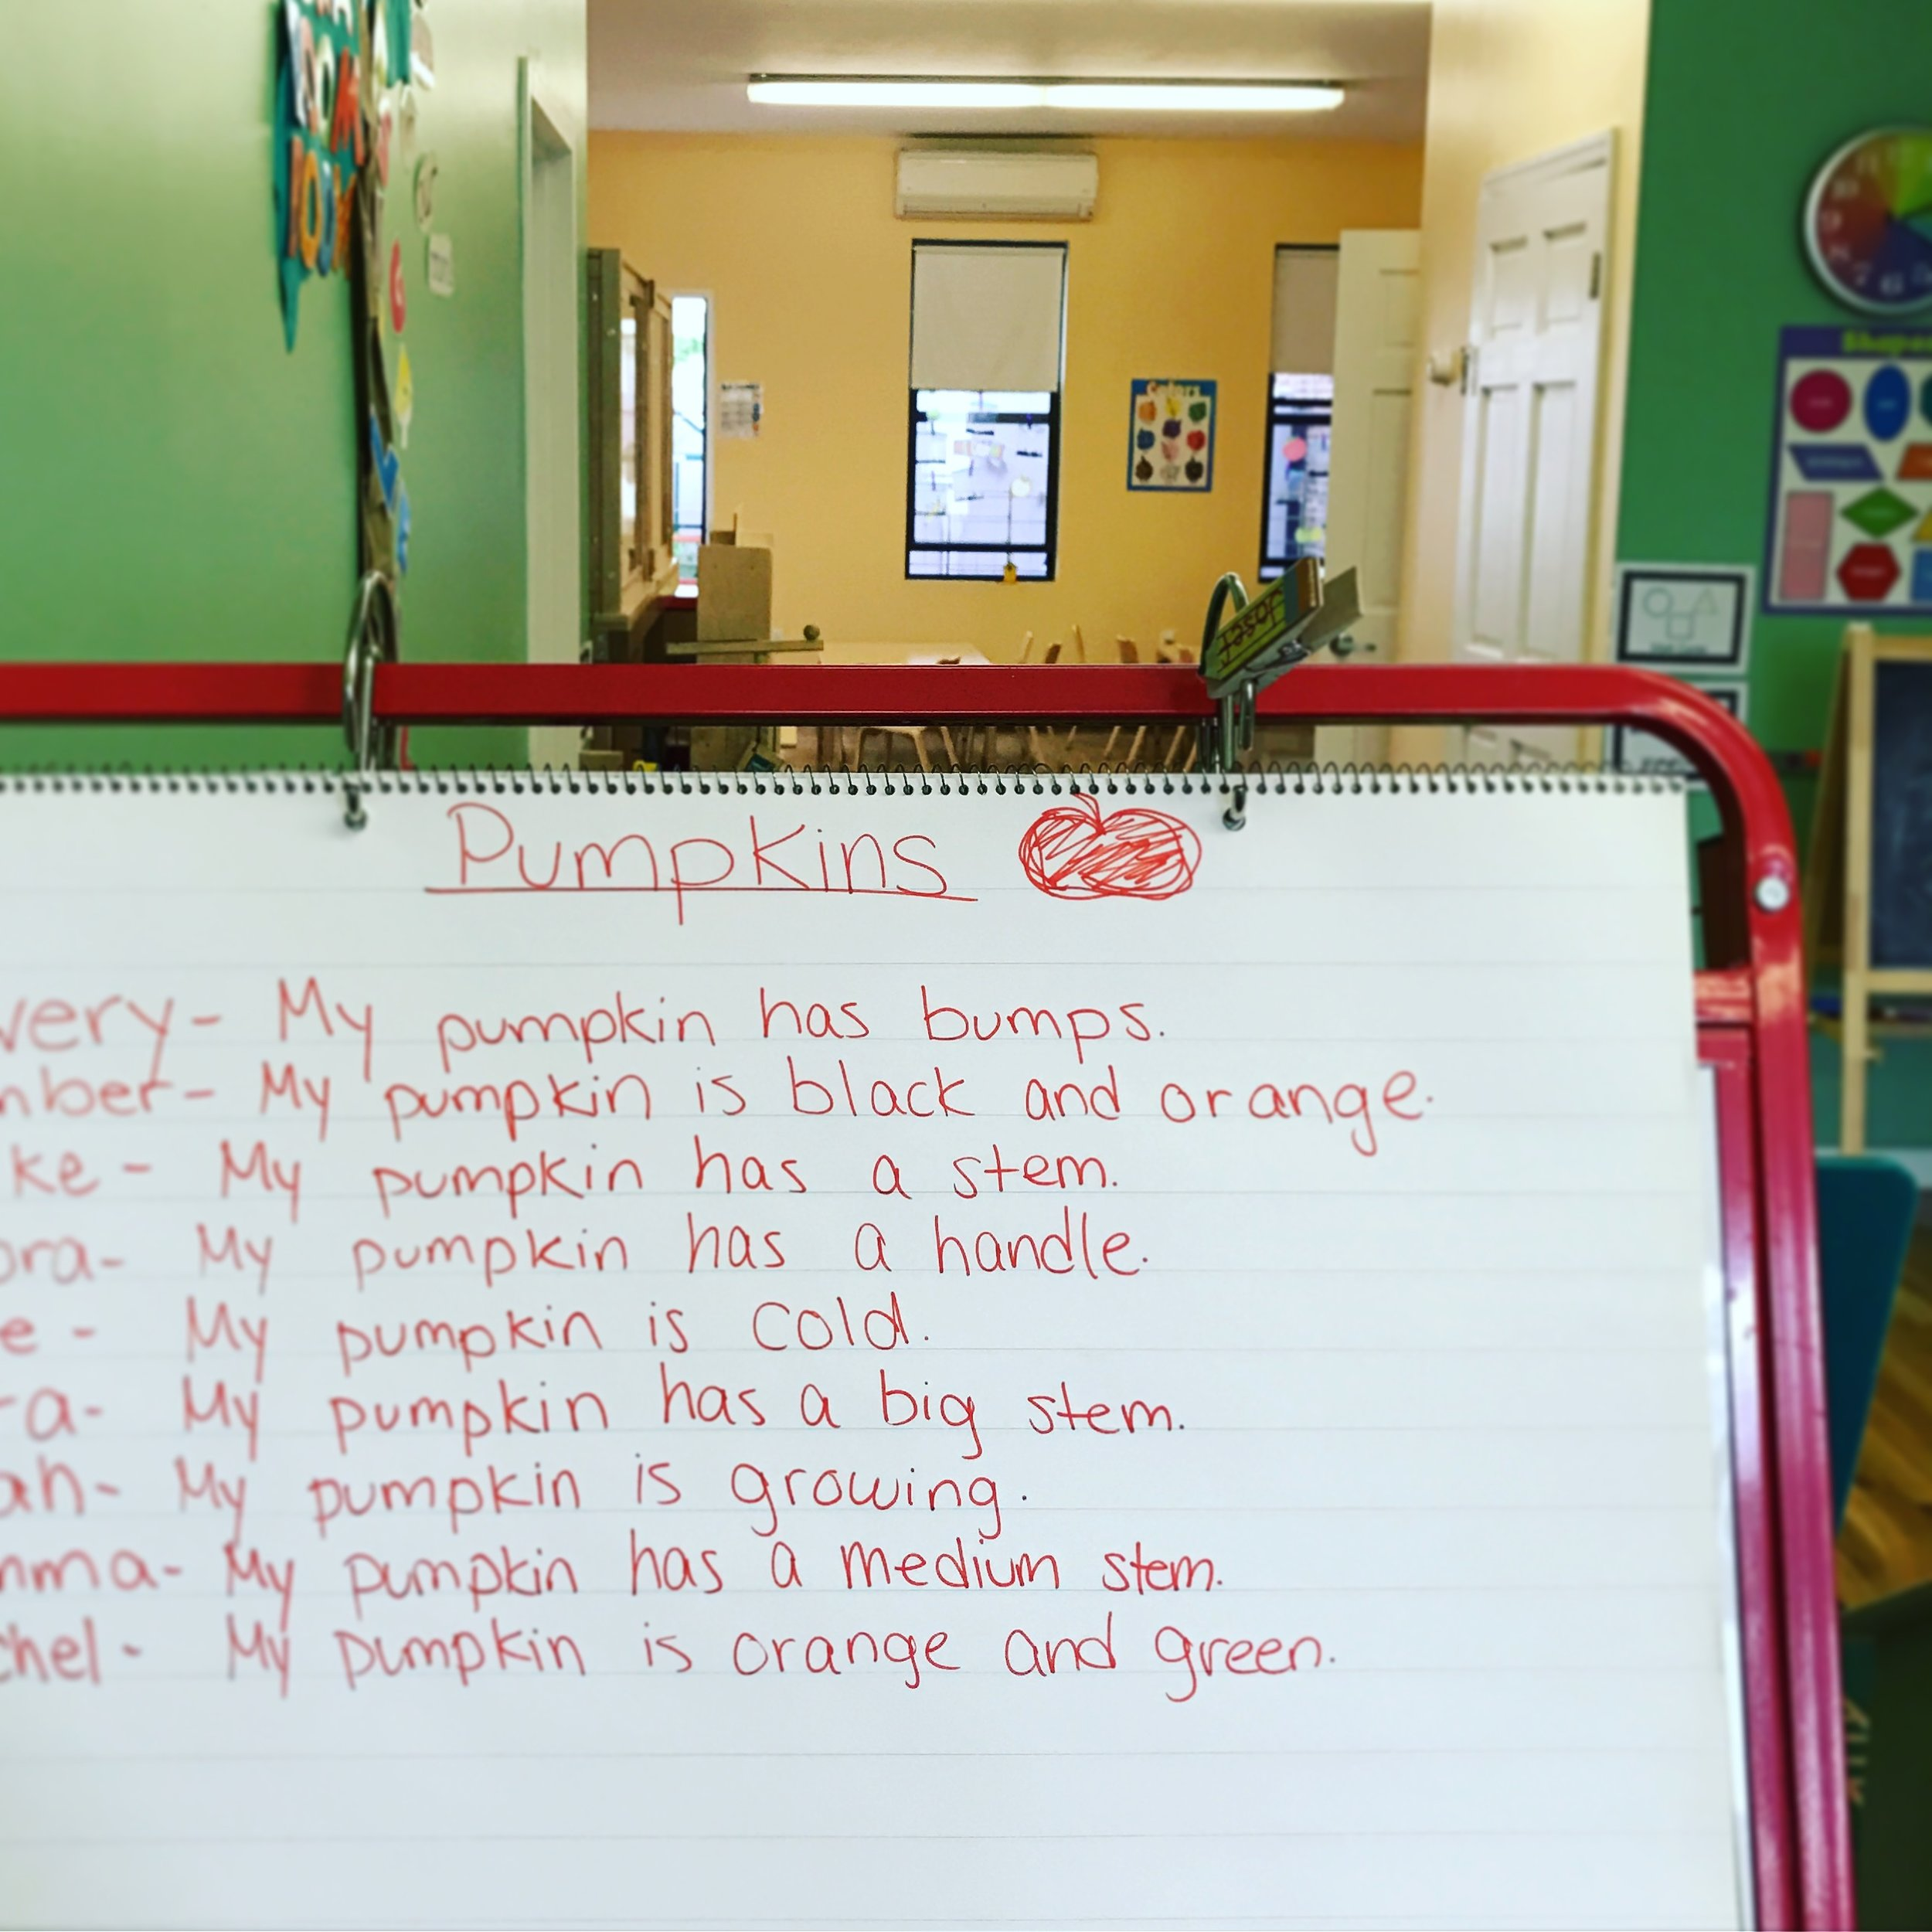 Our initial list from sensory observation!